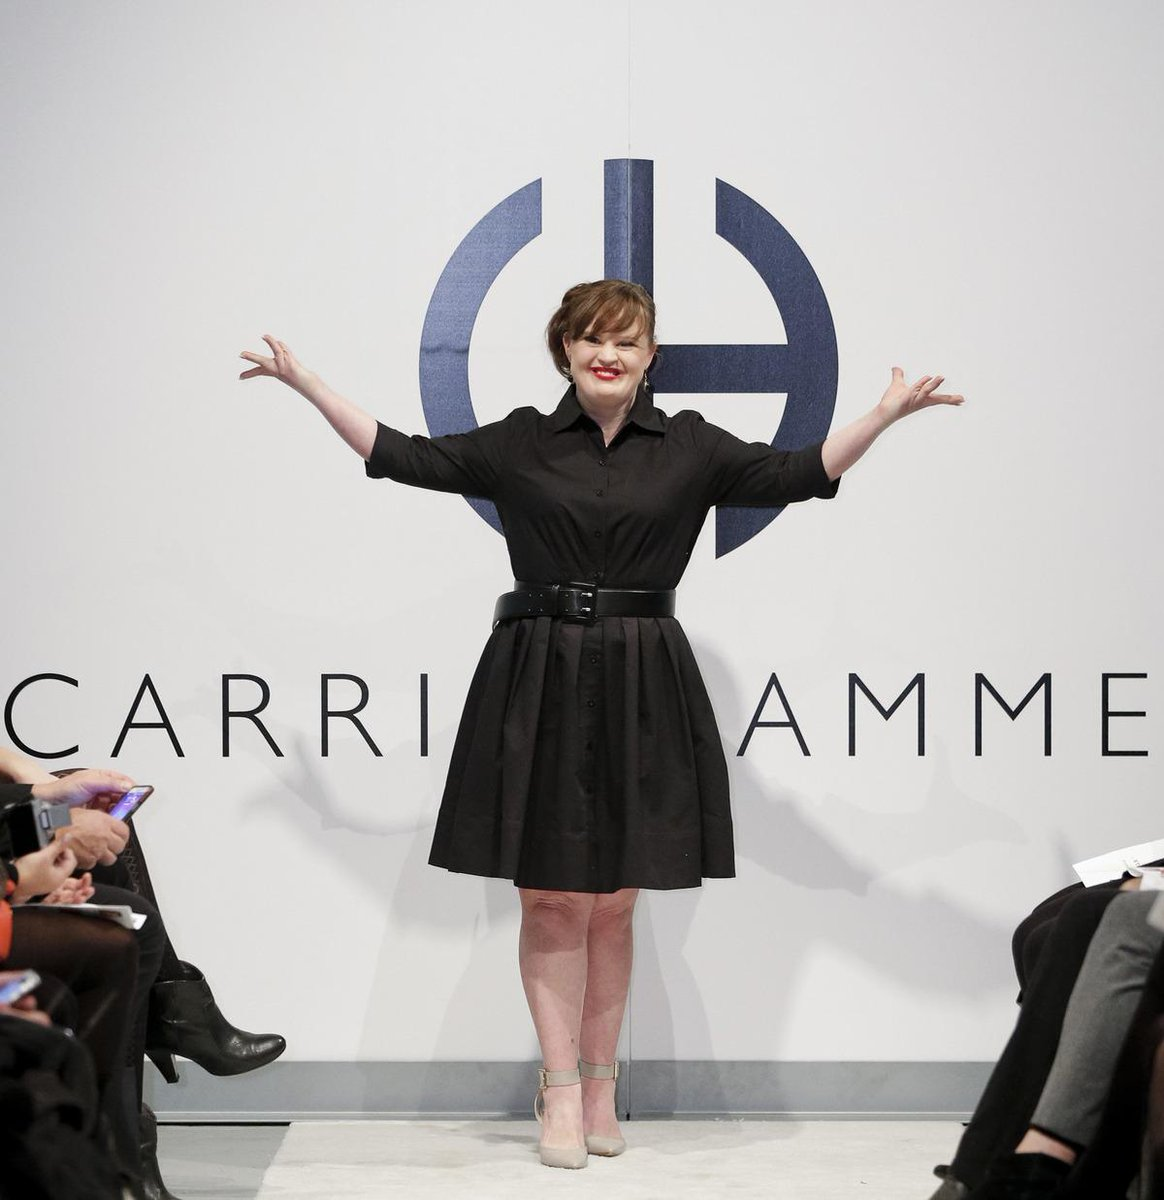 Meet the model with #Downsyndrome who just made fashion history at NYFW http://t.co/C0CySfvHyn http://t.co/g0lEnOCBvr